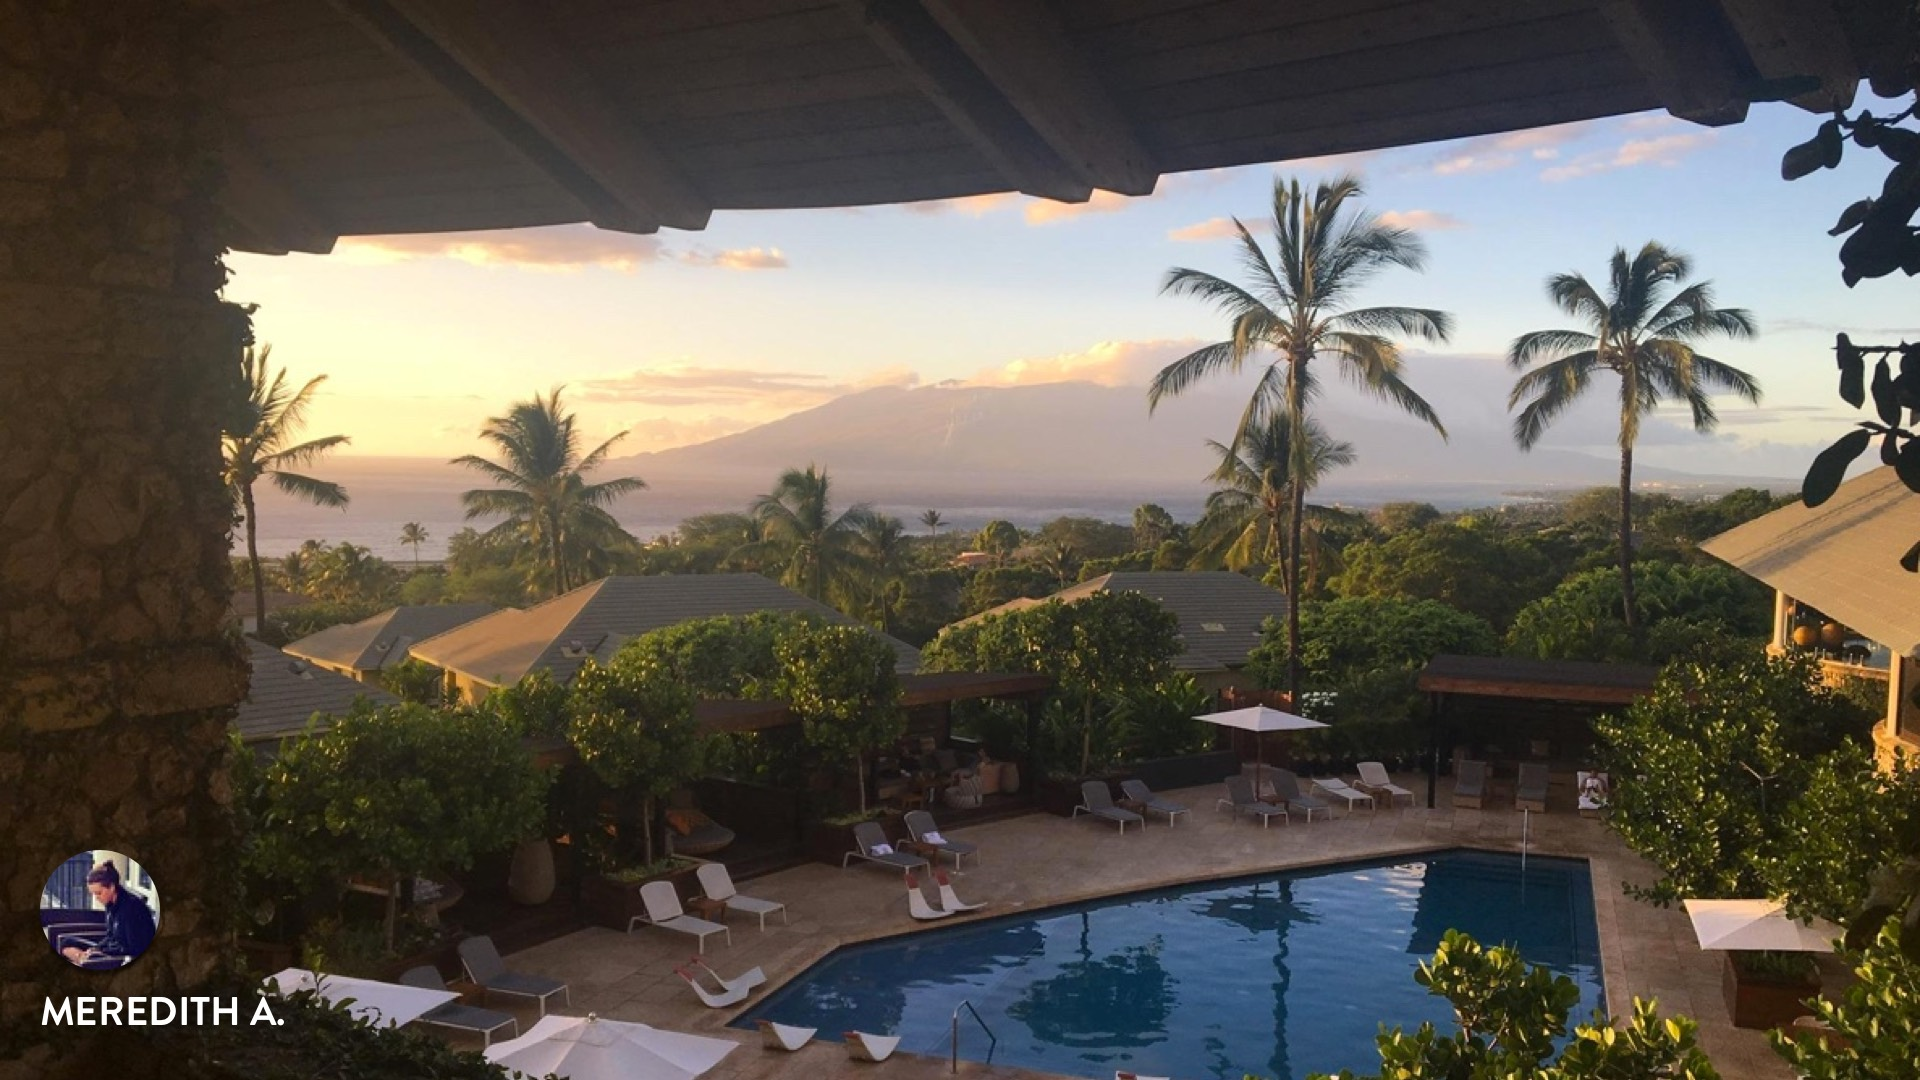 Guest story from Meredith at Hotel Wailea